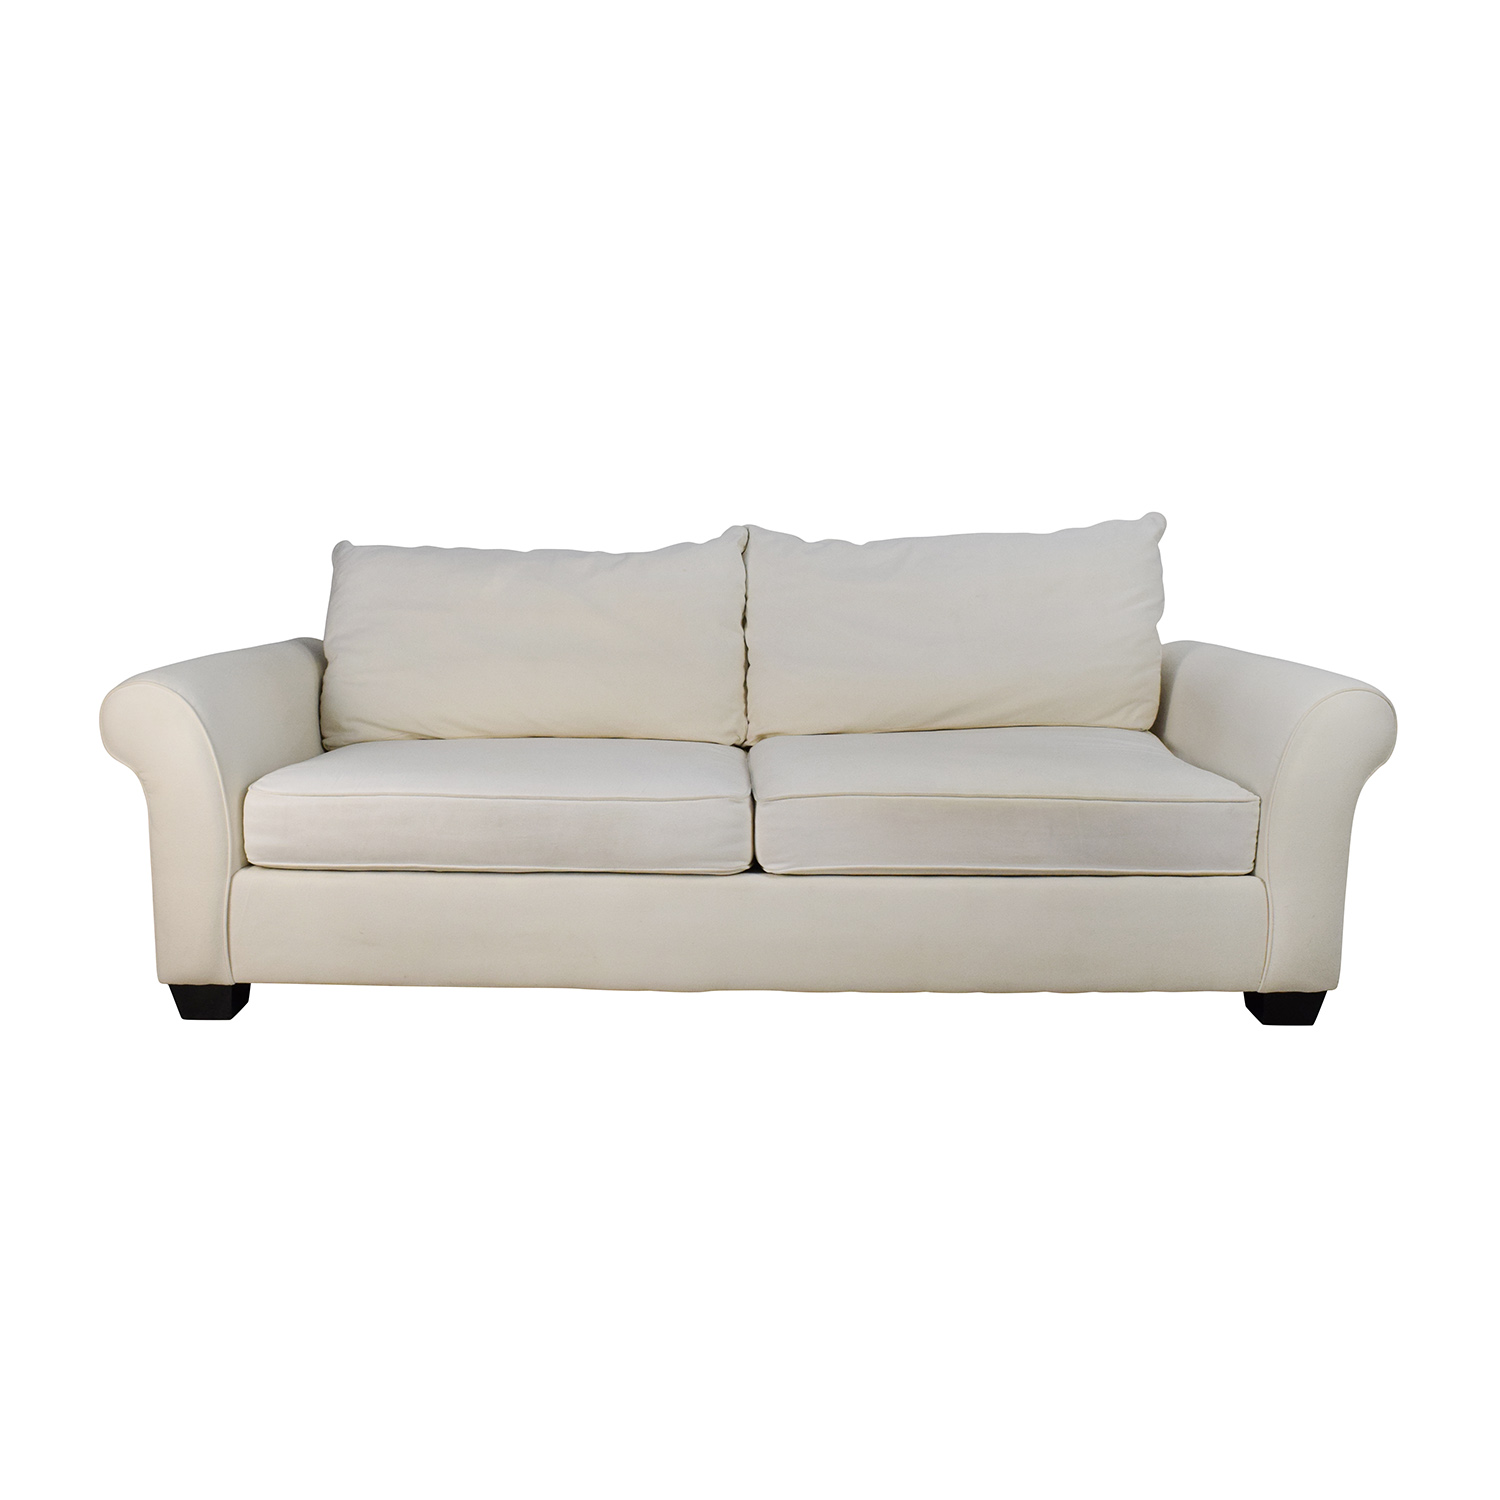 Clever Pottery Barn Pottery Barn Pb Comfort Roll Arm Upholstered Sofa Used Off Pottery Barn Pottery Barn Pb Comfort Roll Arm Upholstered Pottery Barn Turns Pottery Barn Returns Without Receipt baby Pottery Barn Returns